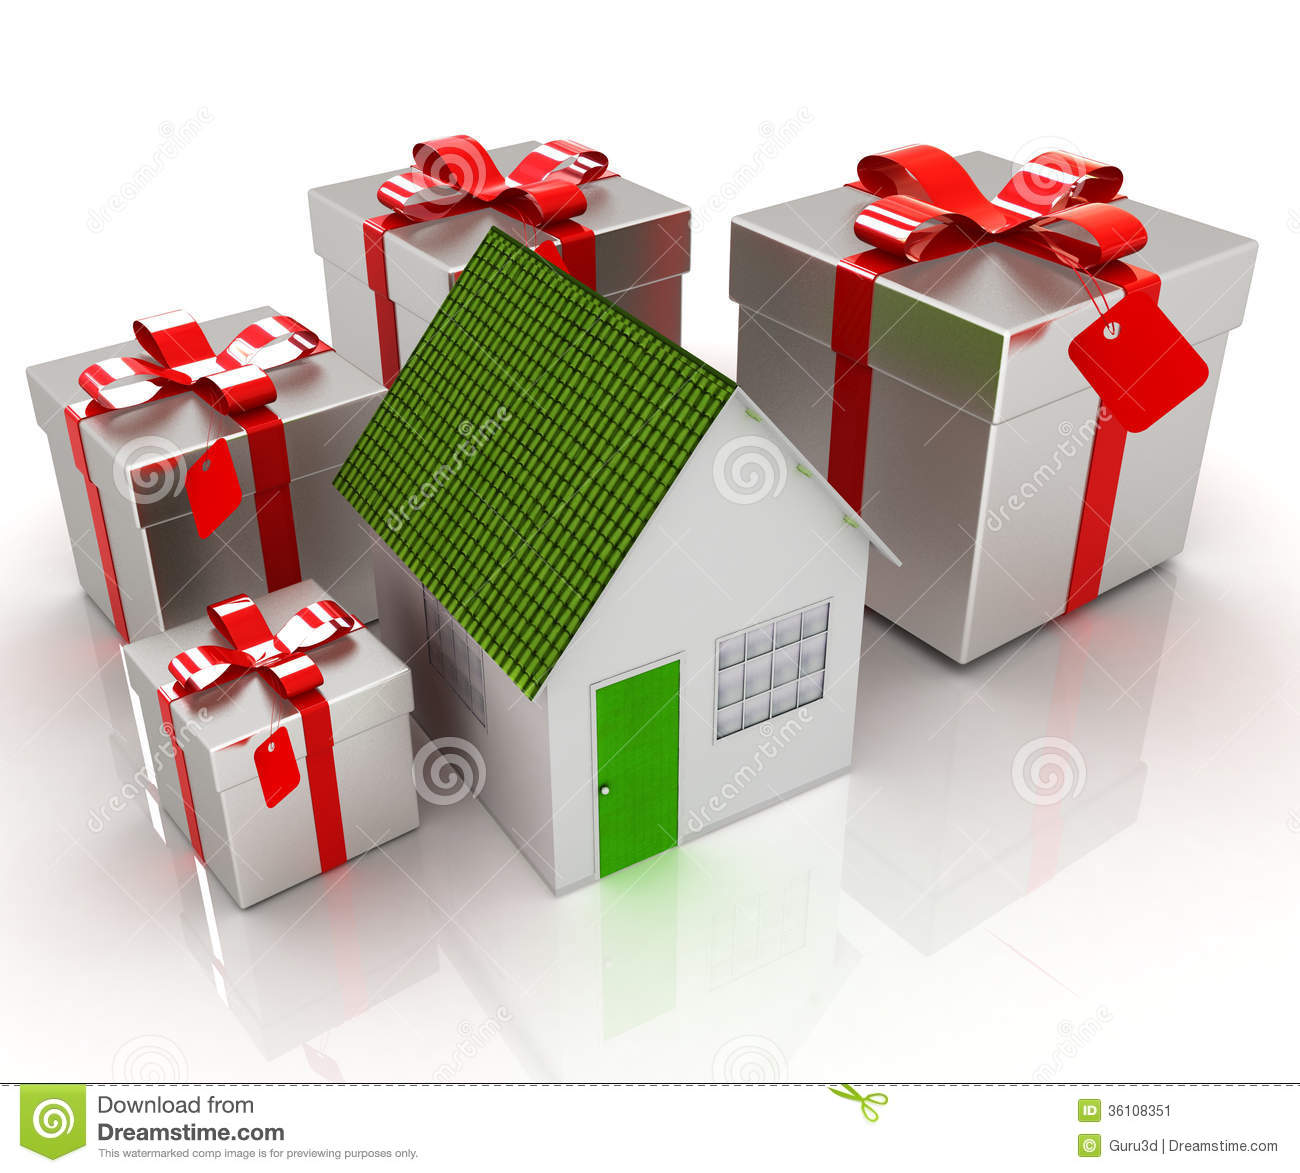 House Gifts house and gifts stock image - image: 36108351